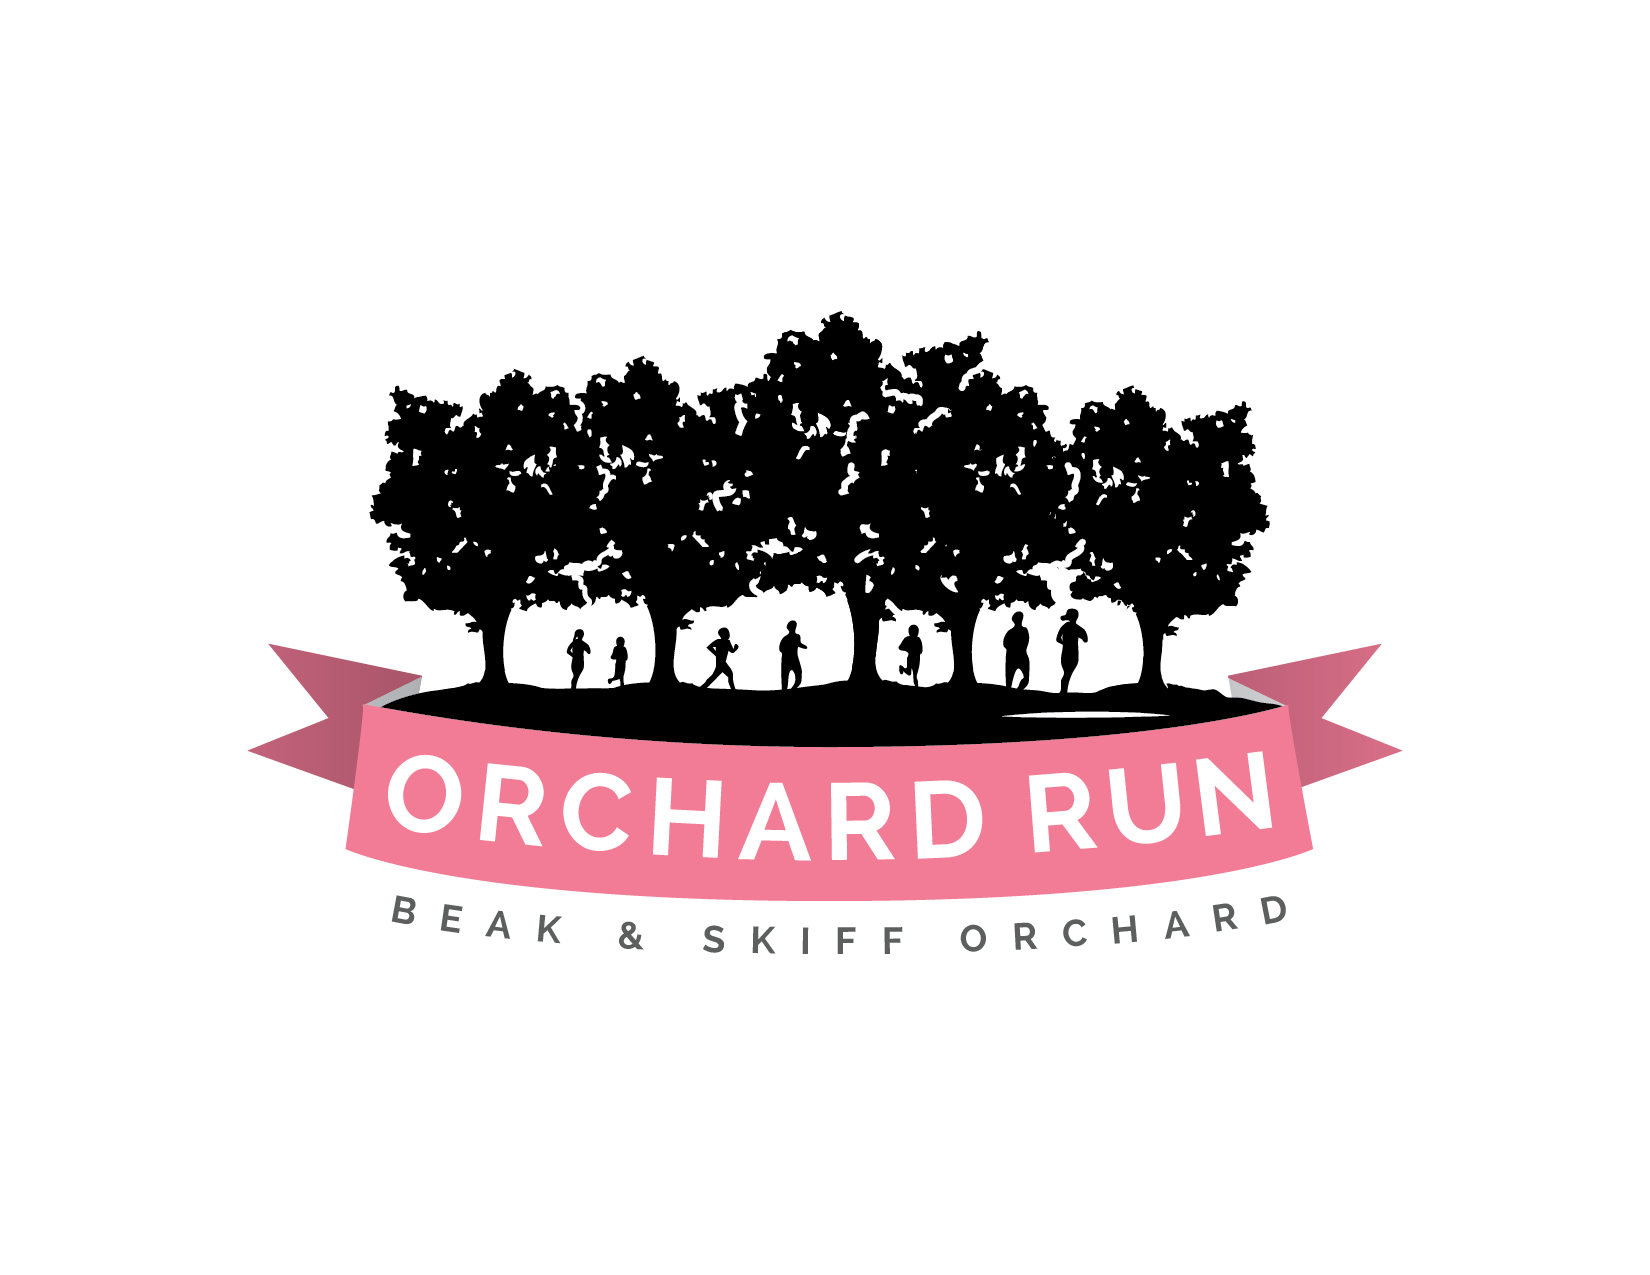 Forth Annual CNY Orchard Run